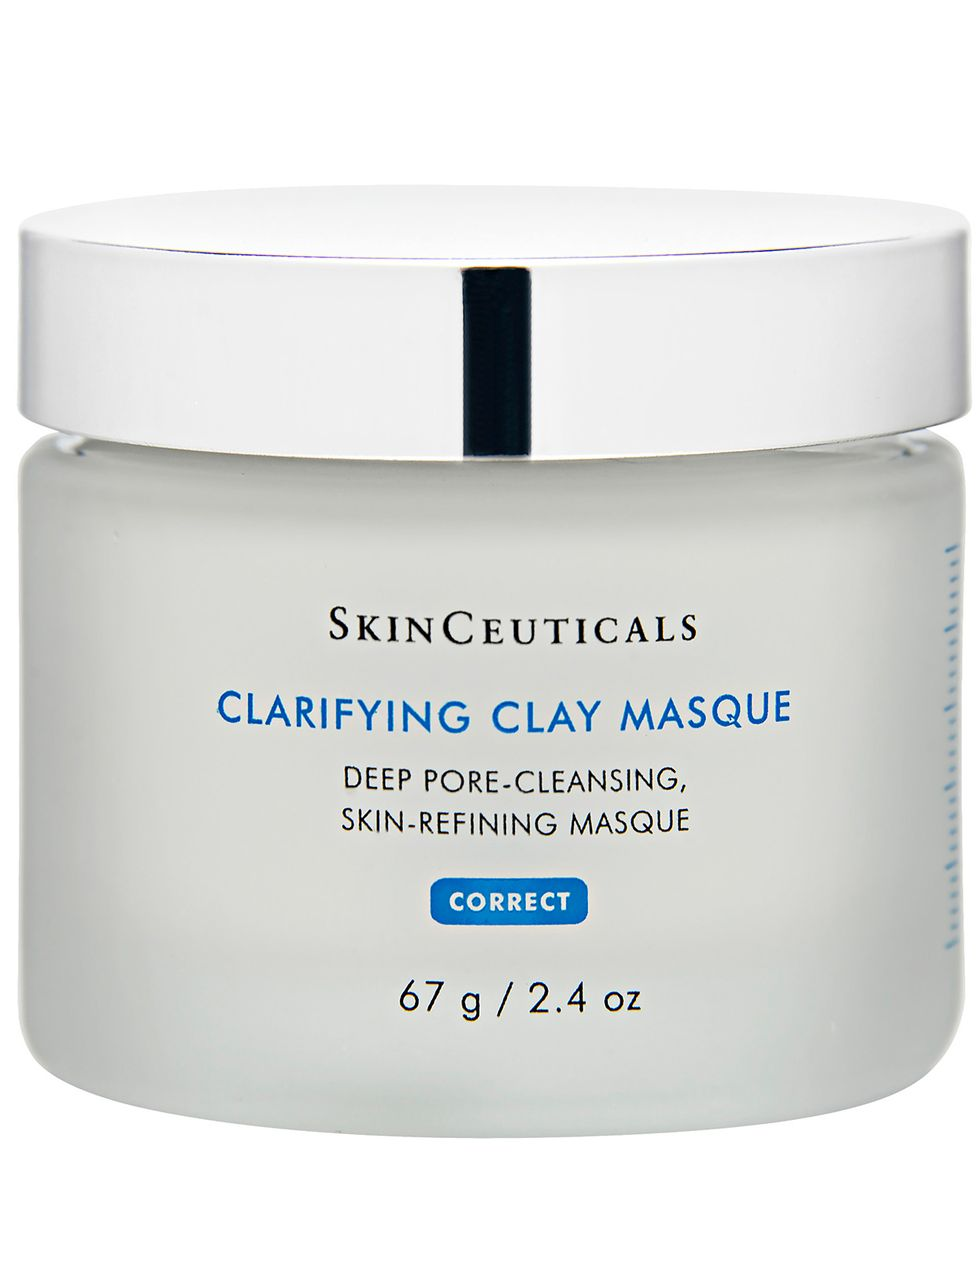 Meet the 7 best face masks for acneprone skin (according